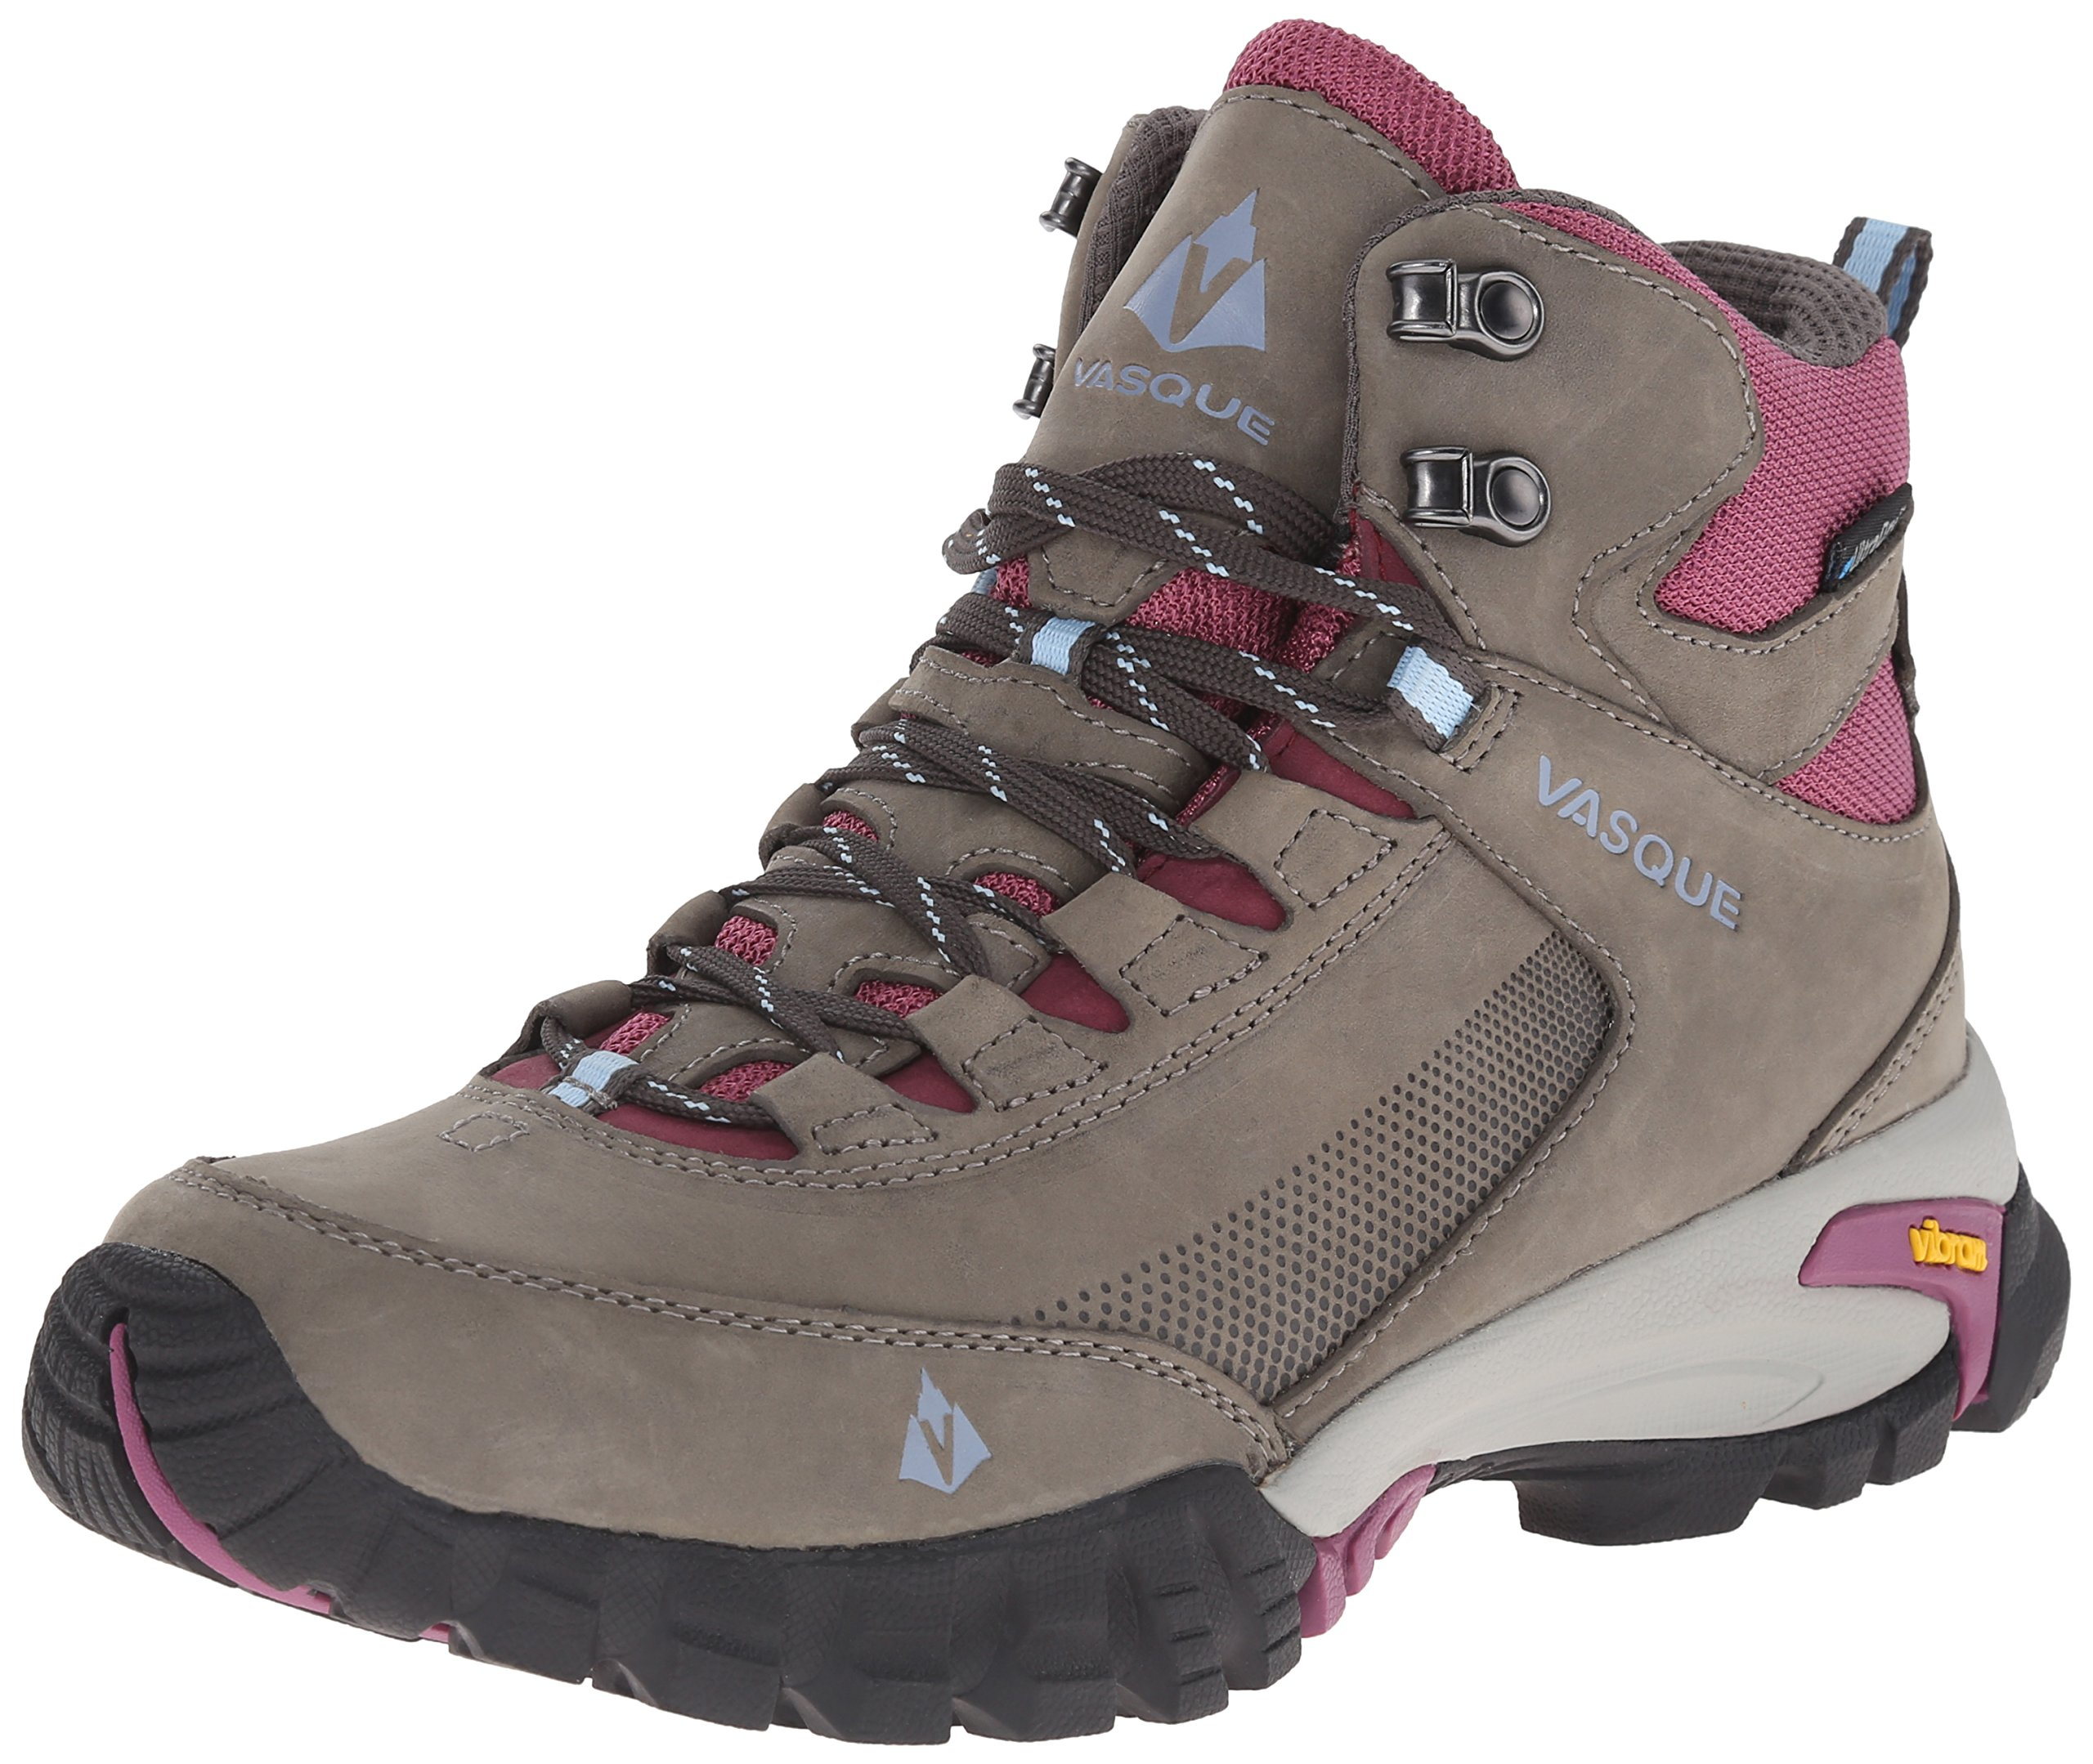 Vasque Women's Talus Trek UltraDry Hiking Boot, Gargoyle/Damson, 8.5 M US by Vasque